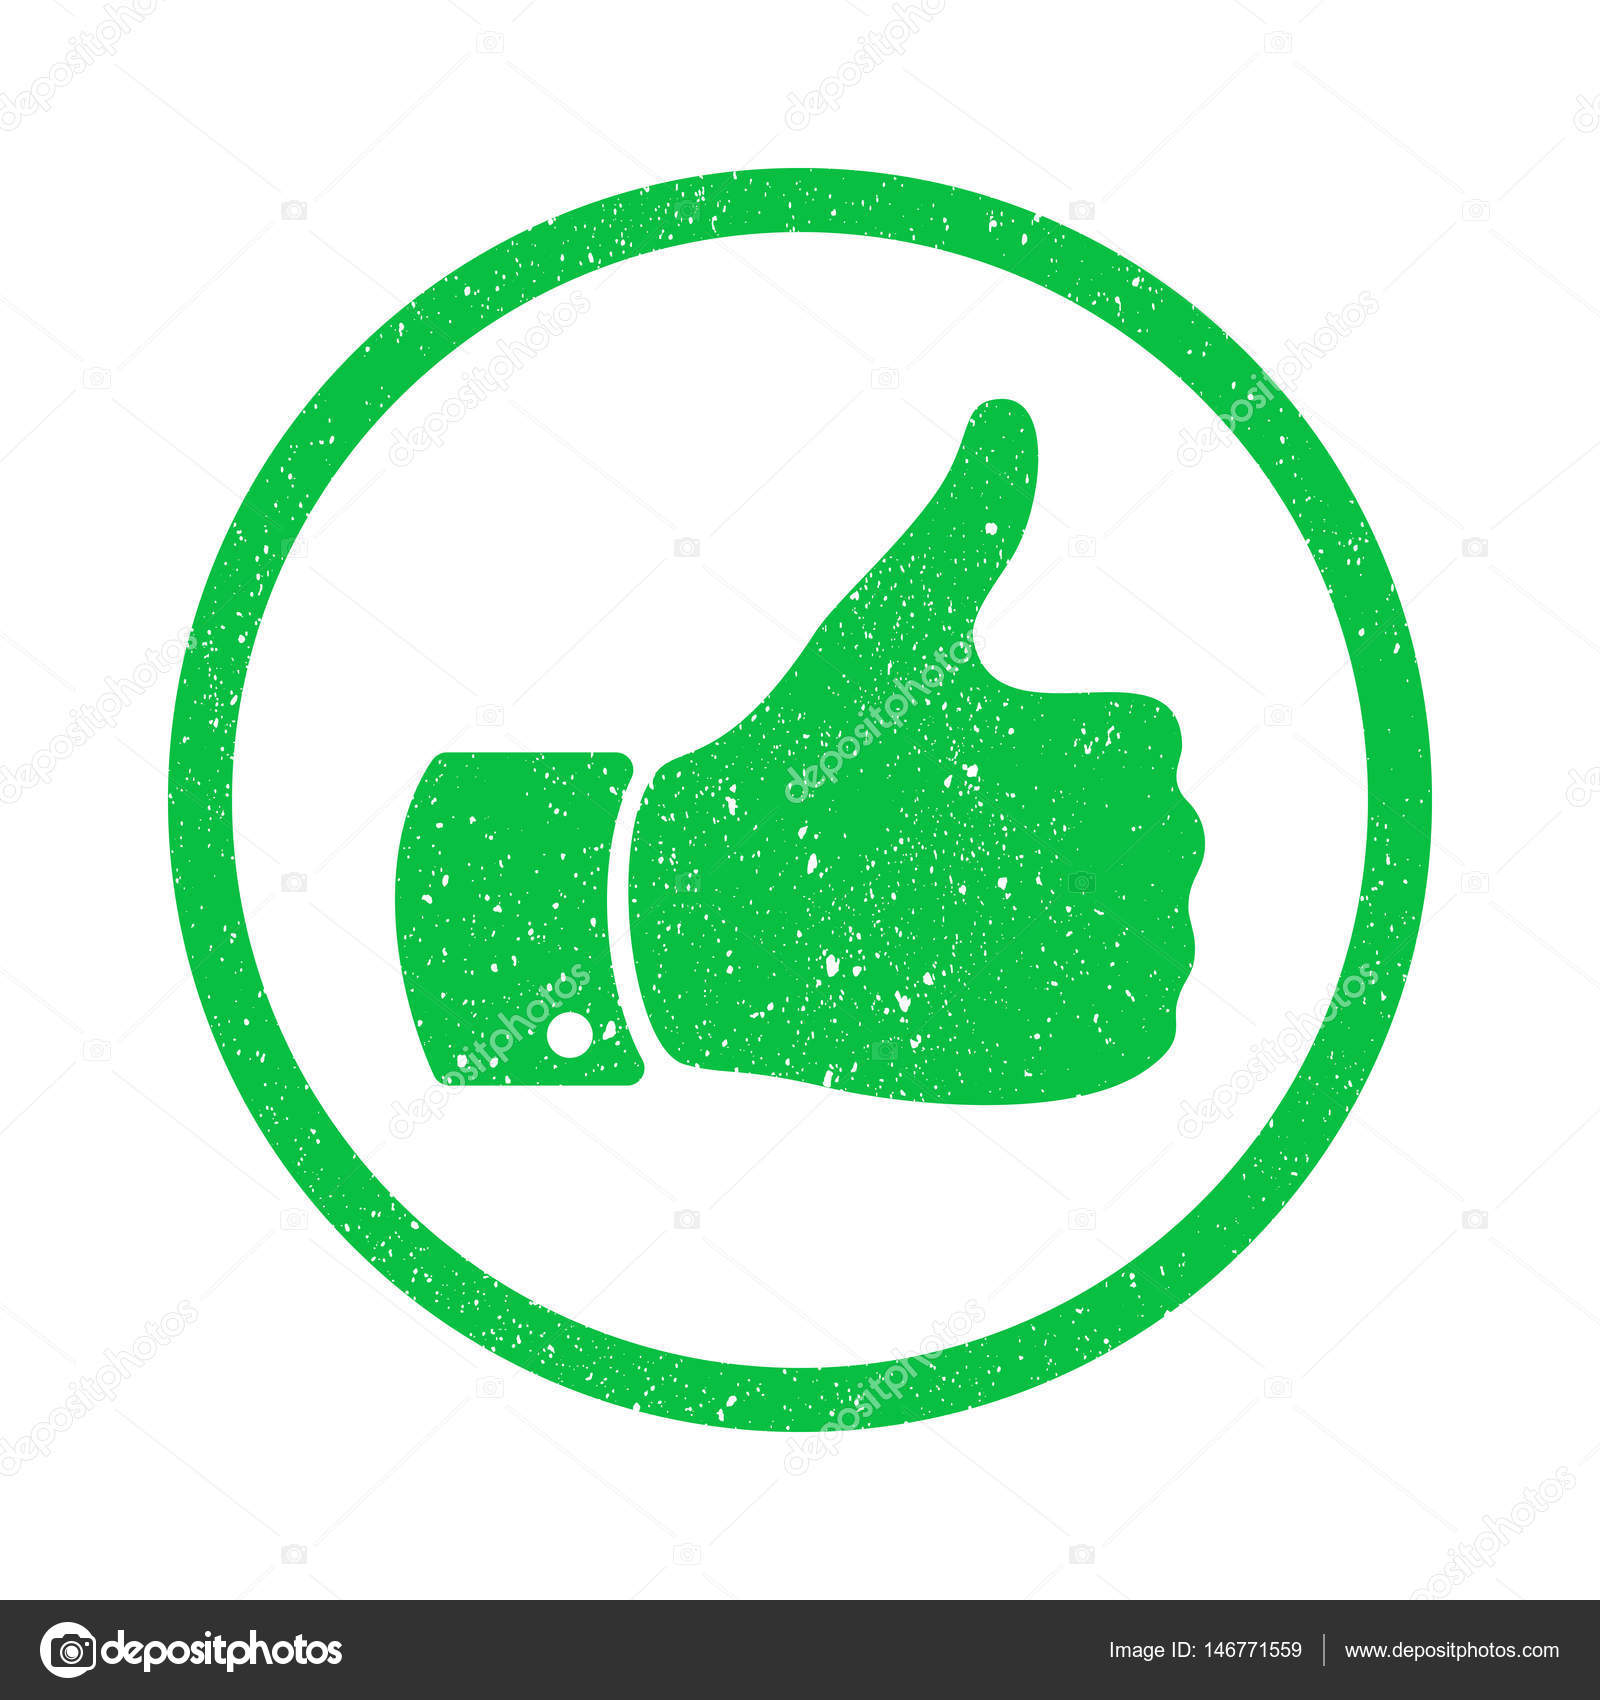 Grunge Thumb Up Symbol Distressed Human Hand Icon Sign Of Like